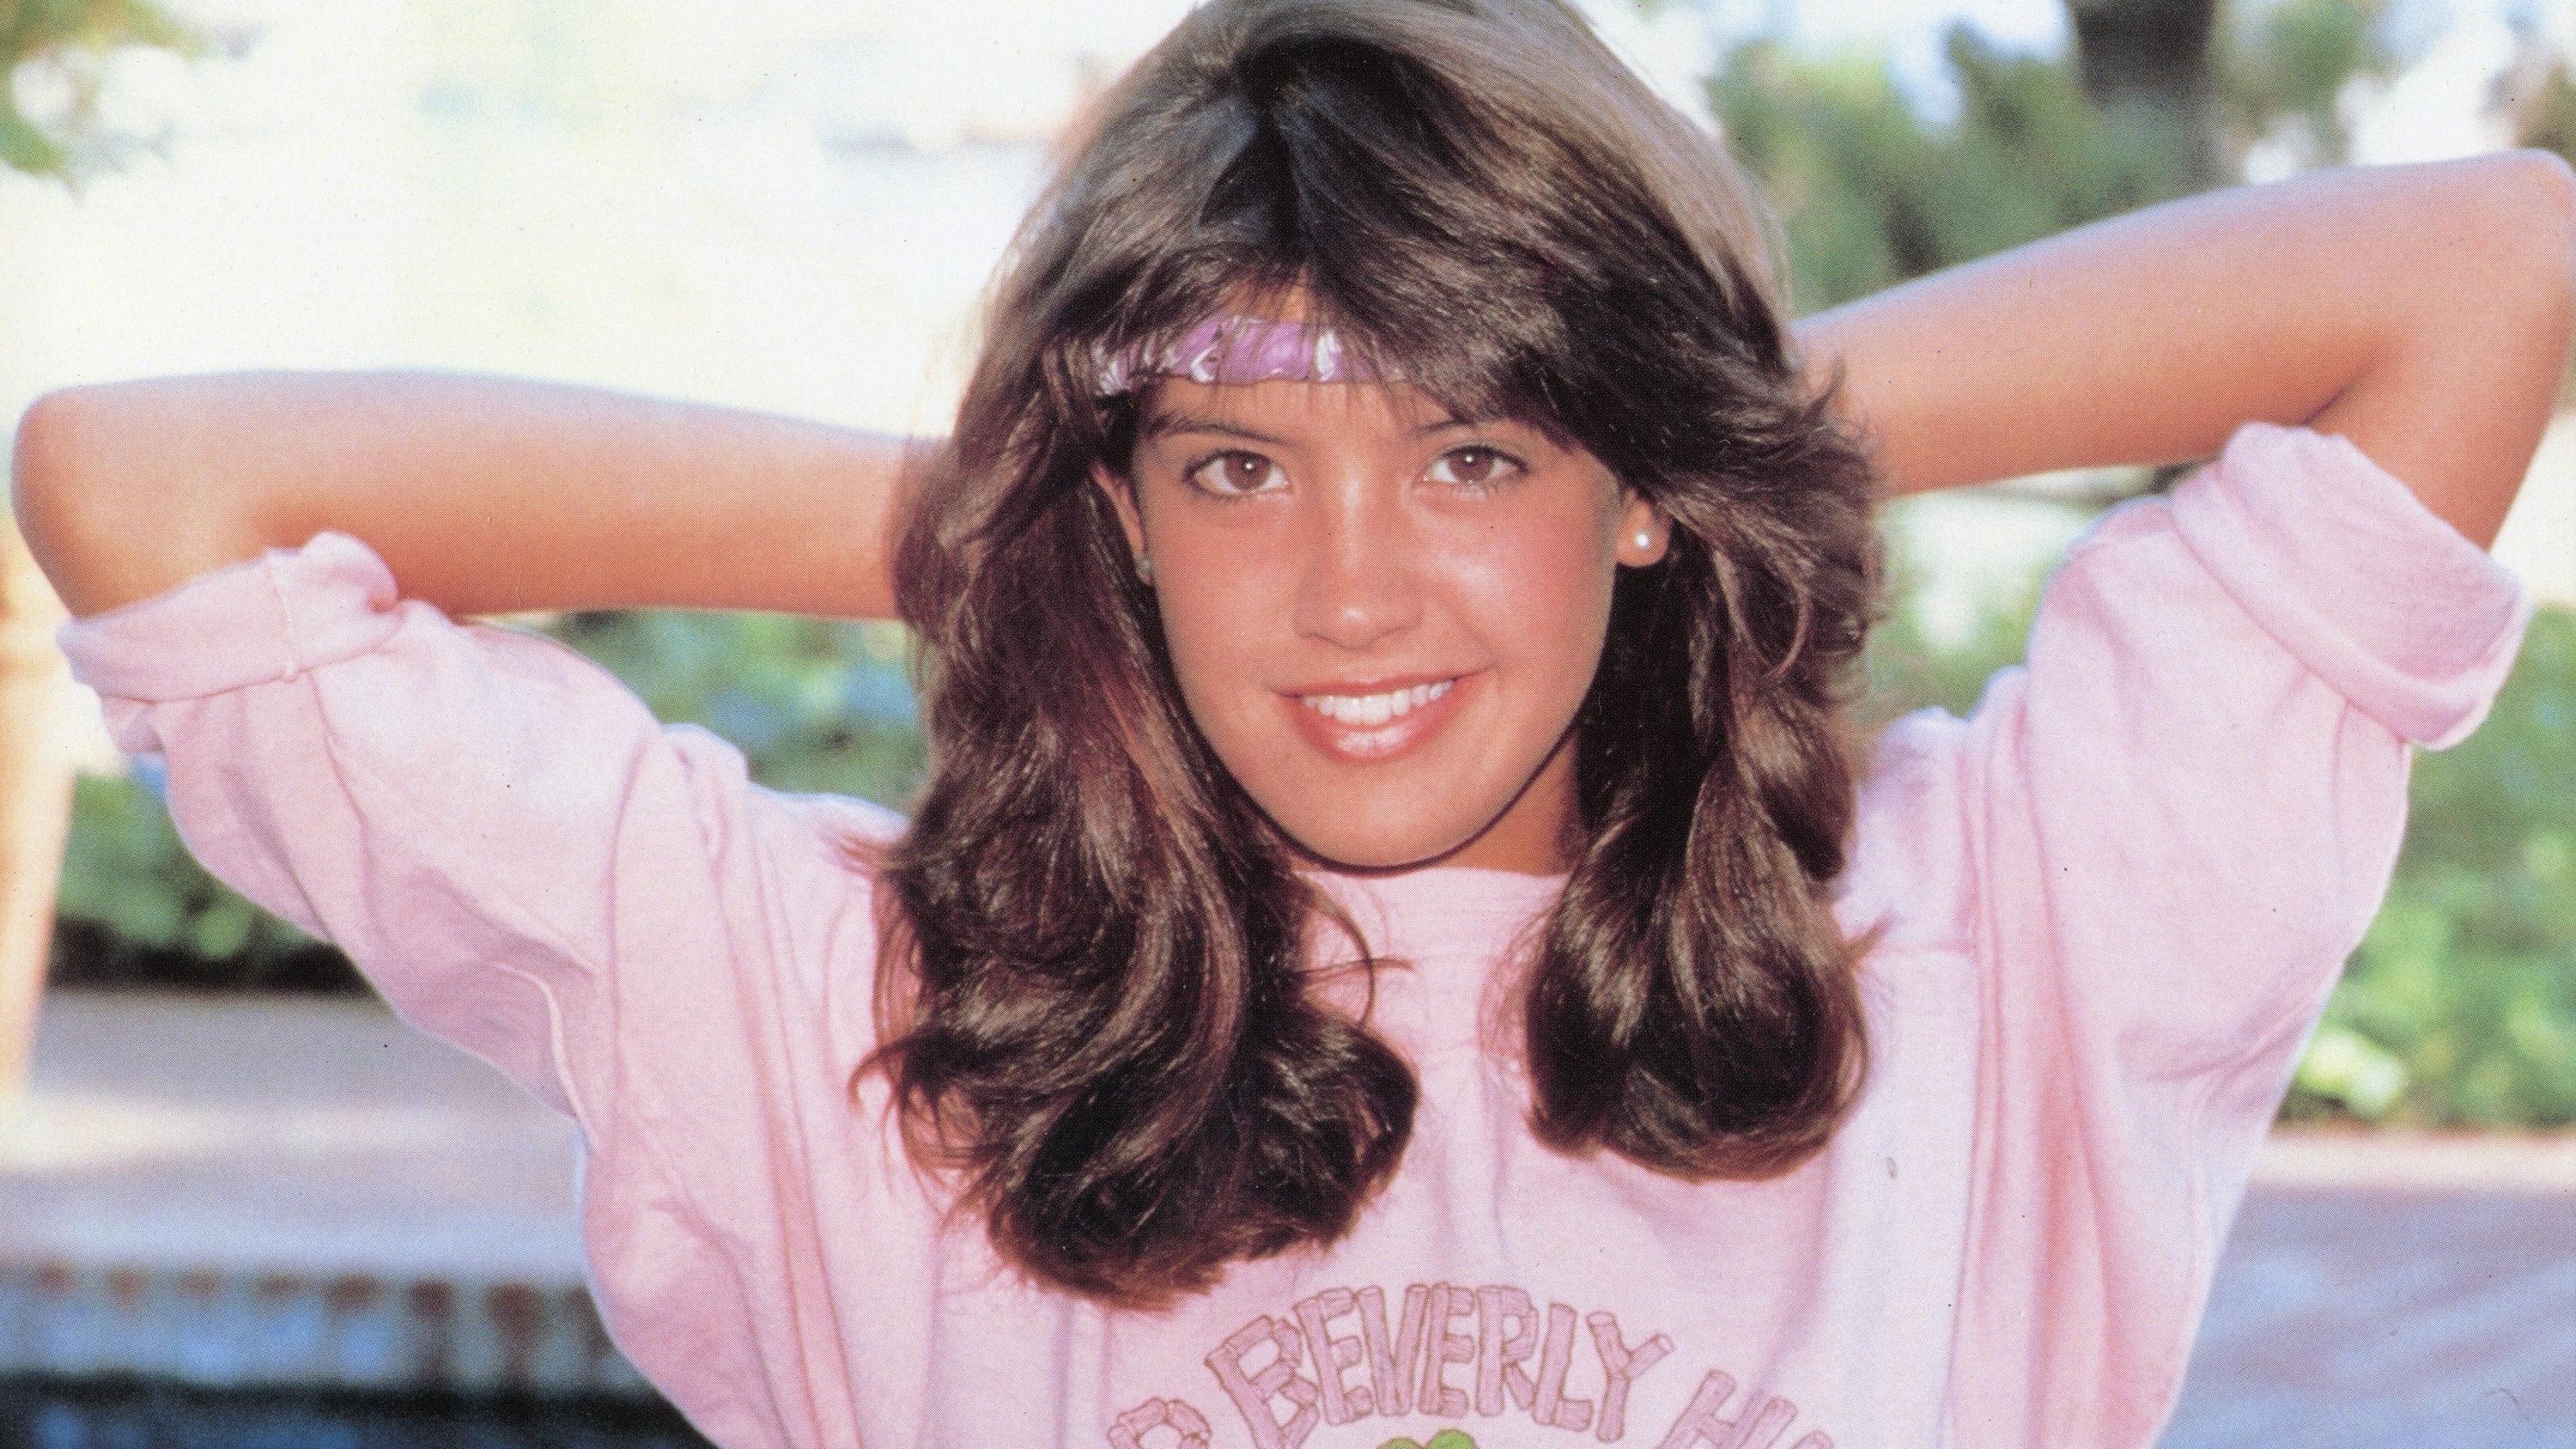 3000x1687 - Phoebe Cates Wallpapers 5